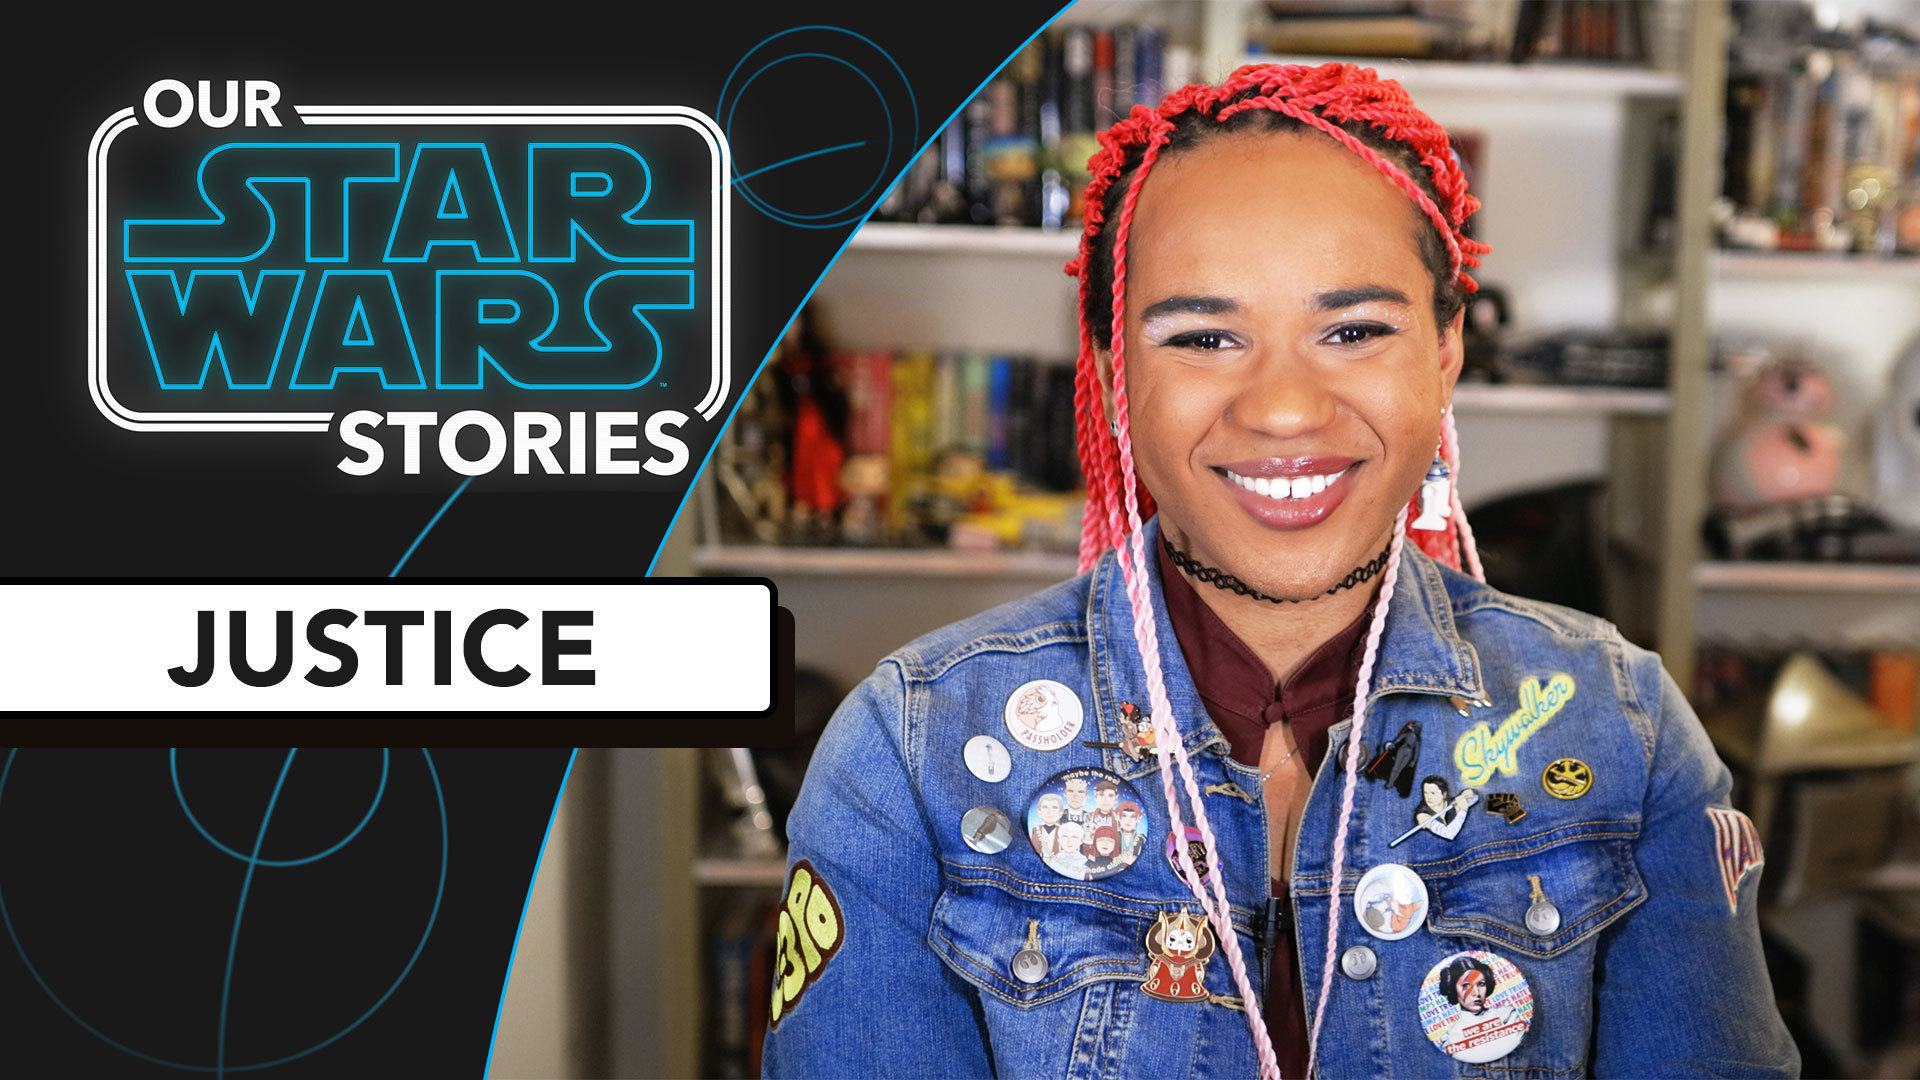 The Many Ways That Star Wars Inspired Justice Schiappa | Our Star Wars Stories